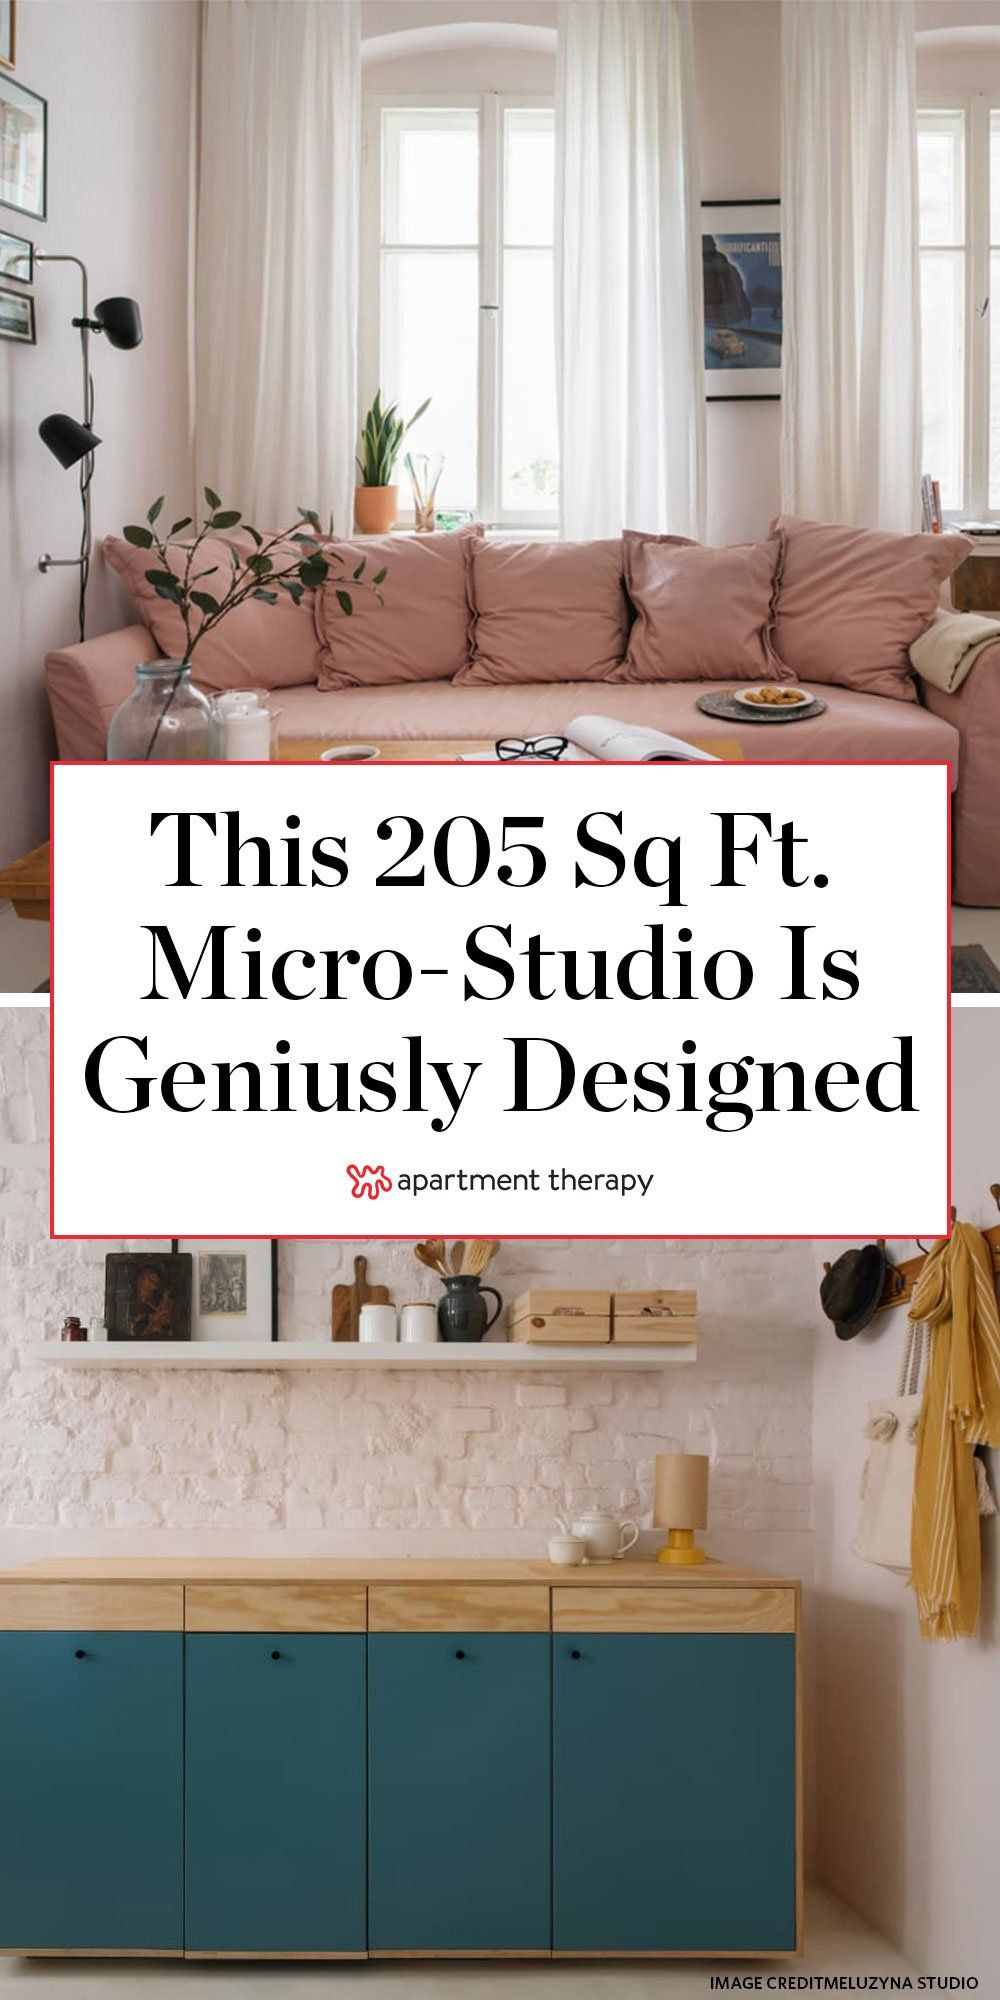 A 205 Square Foot Micro Studio Has An Ingeniously Designed Small Kitchenette In 2020 Small Kitchenette Small Spaces Micro Studio